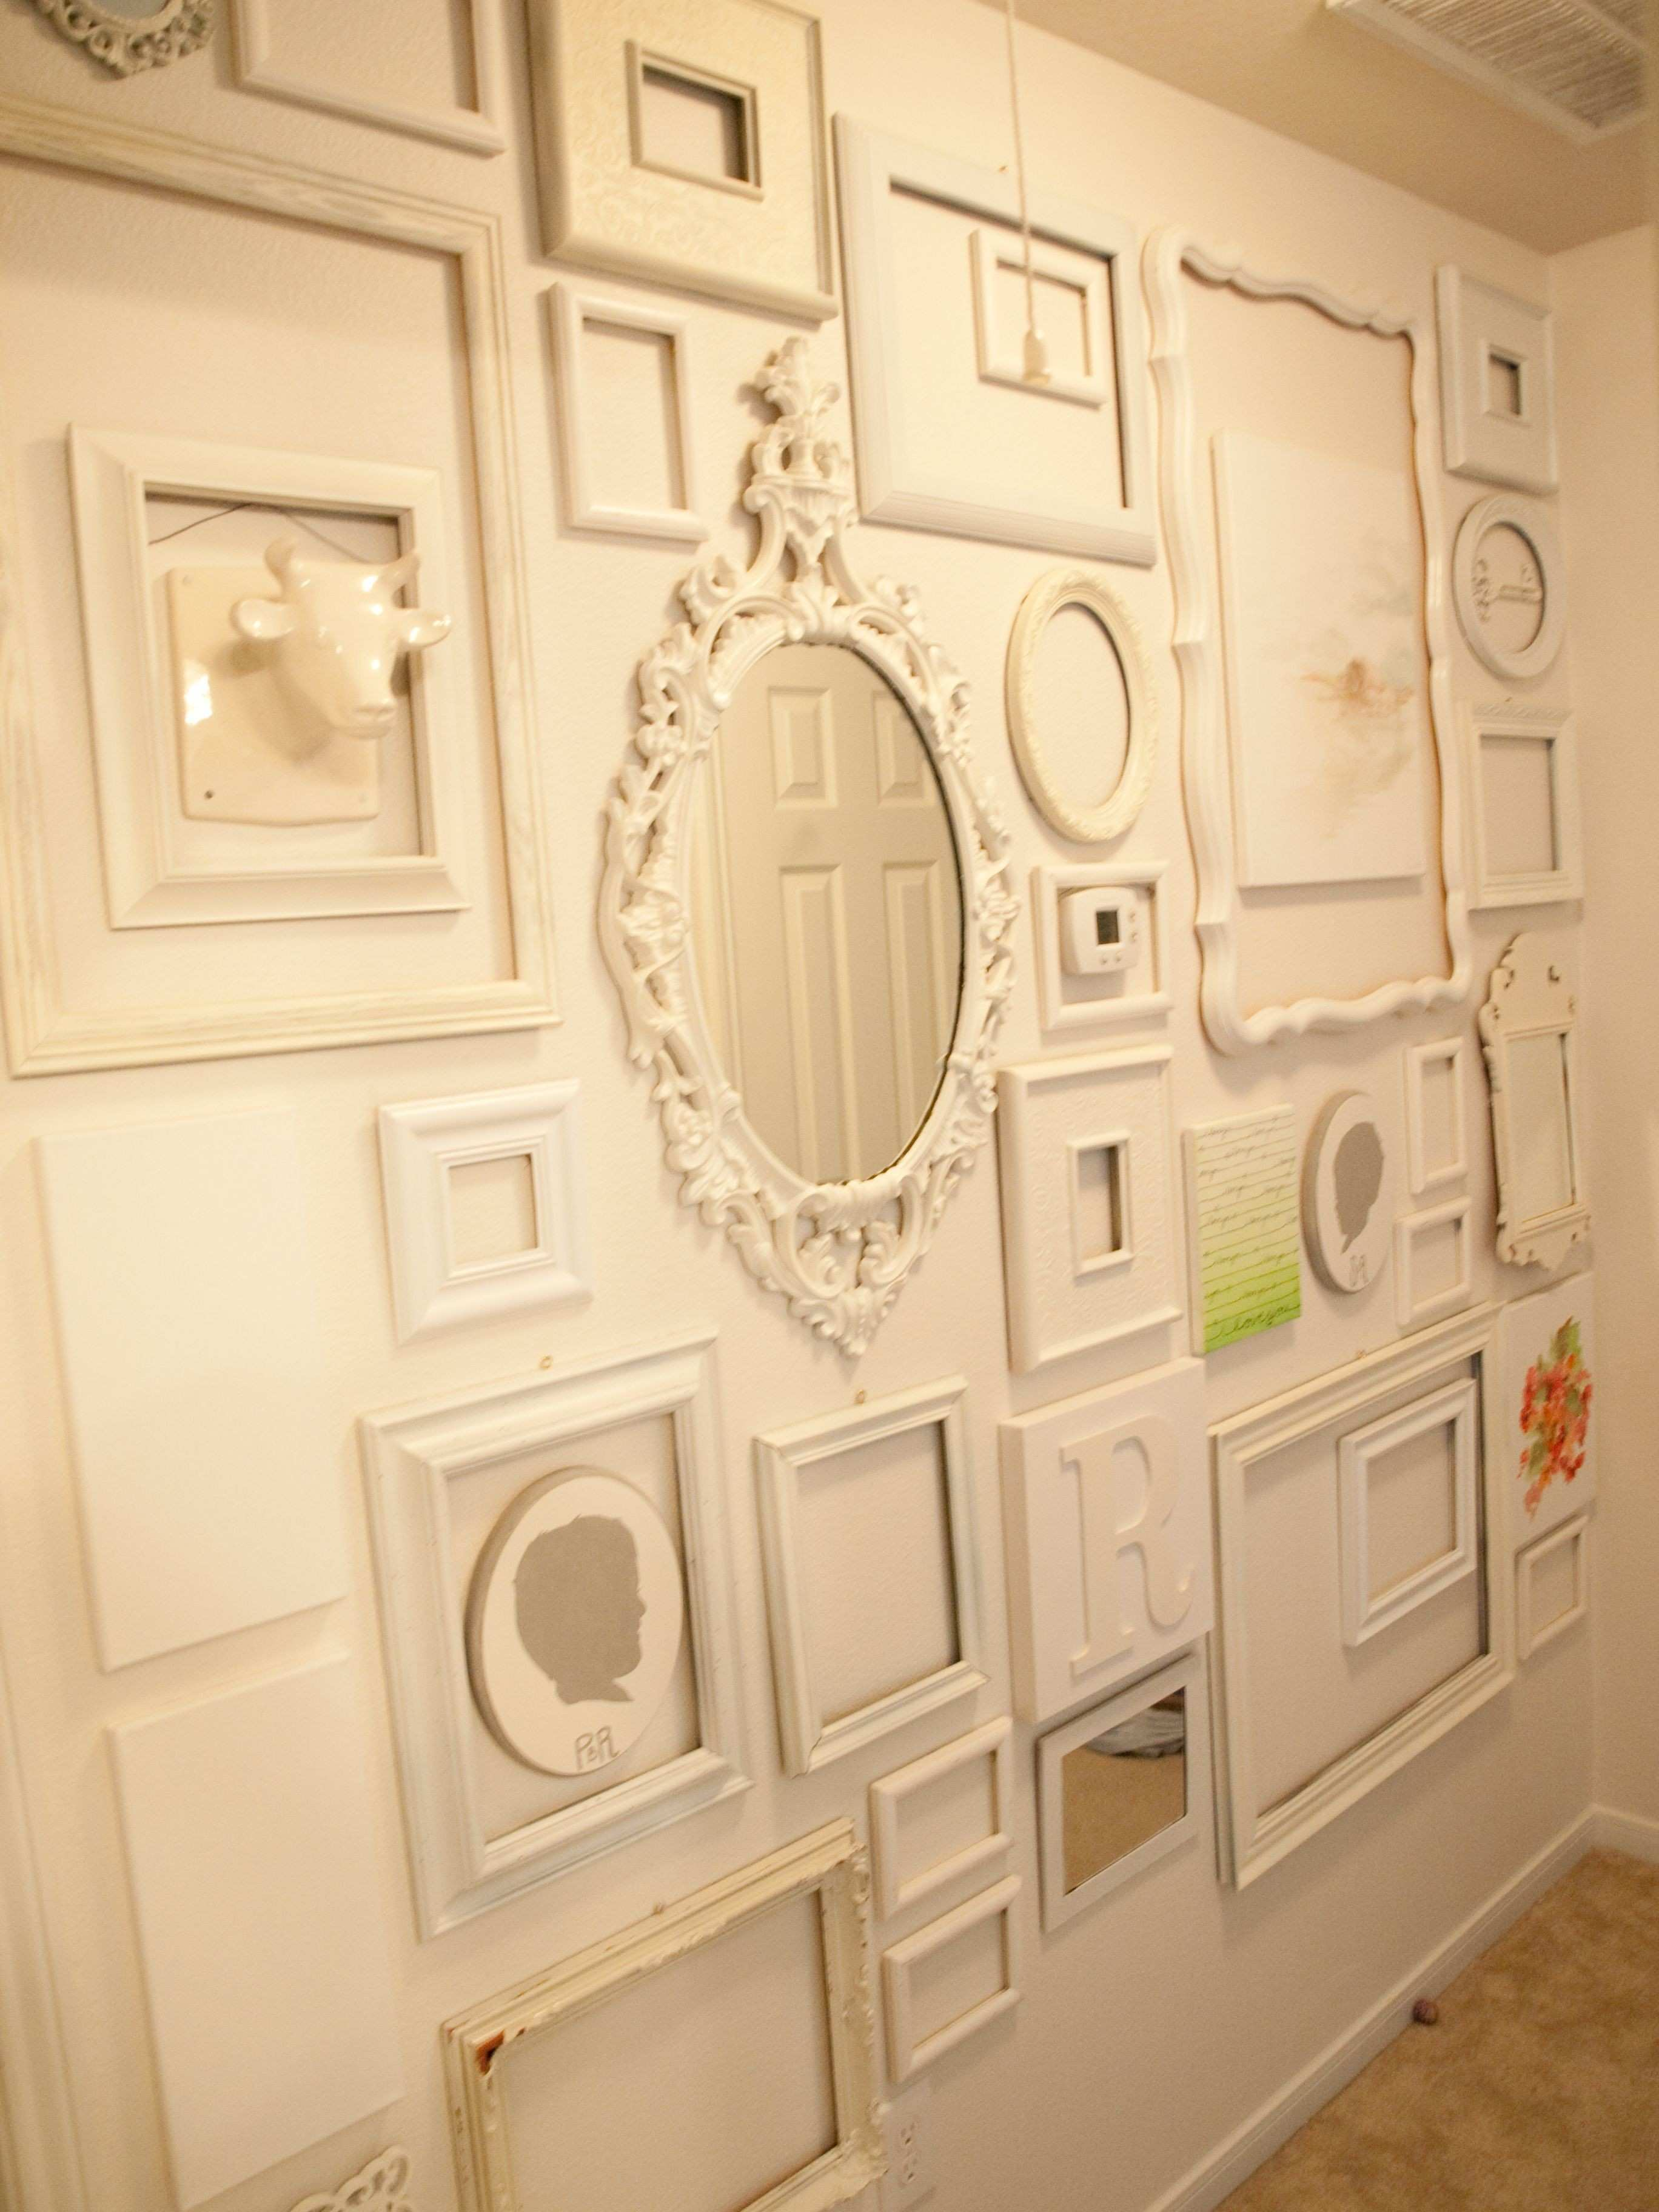 Do something like this but in red frames with the tan wall in the